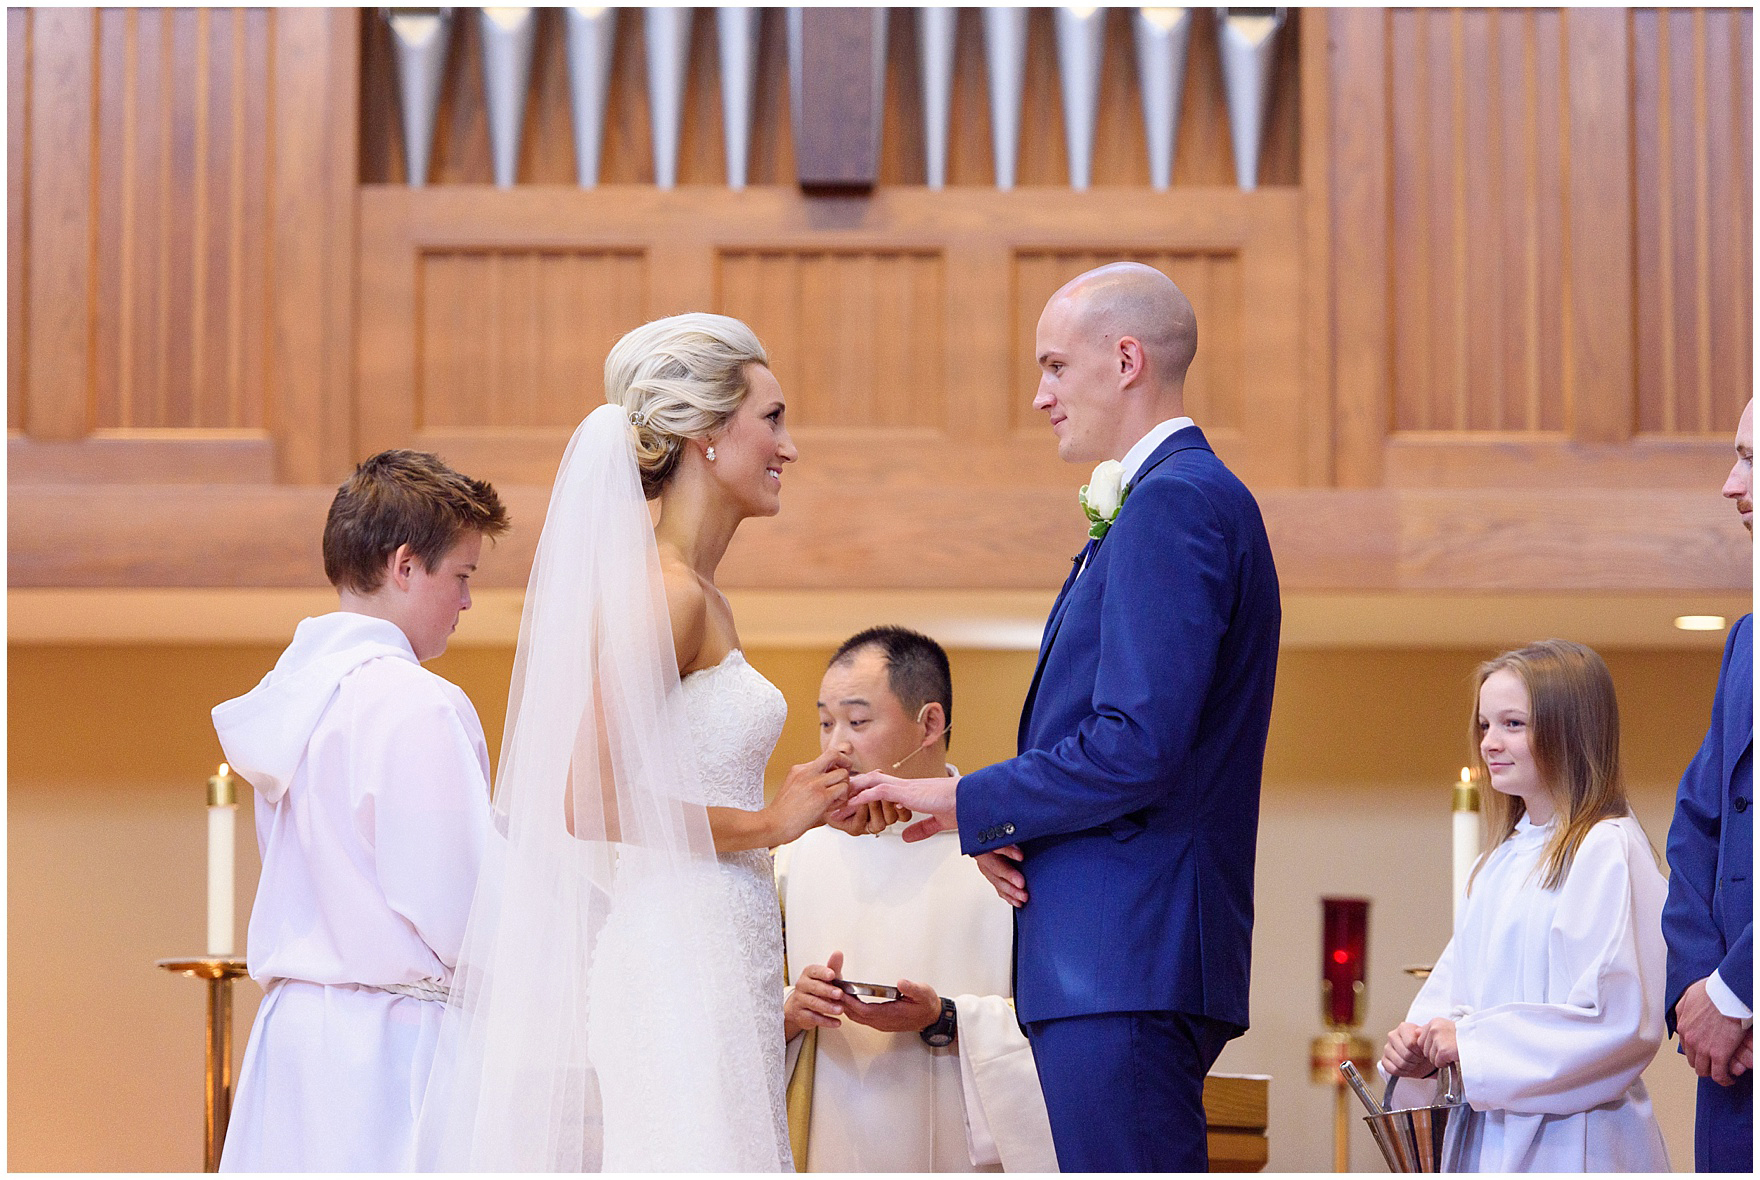 The bride and groom exchange rings during the ceremony for a St. Josephs Downers Grove Pinstripes Oak Brook, Illinois wedding.